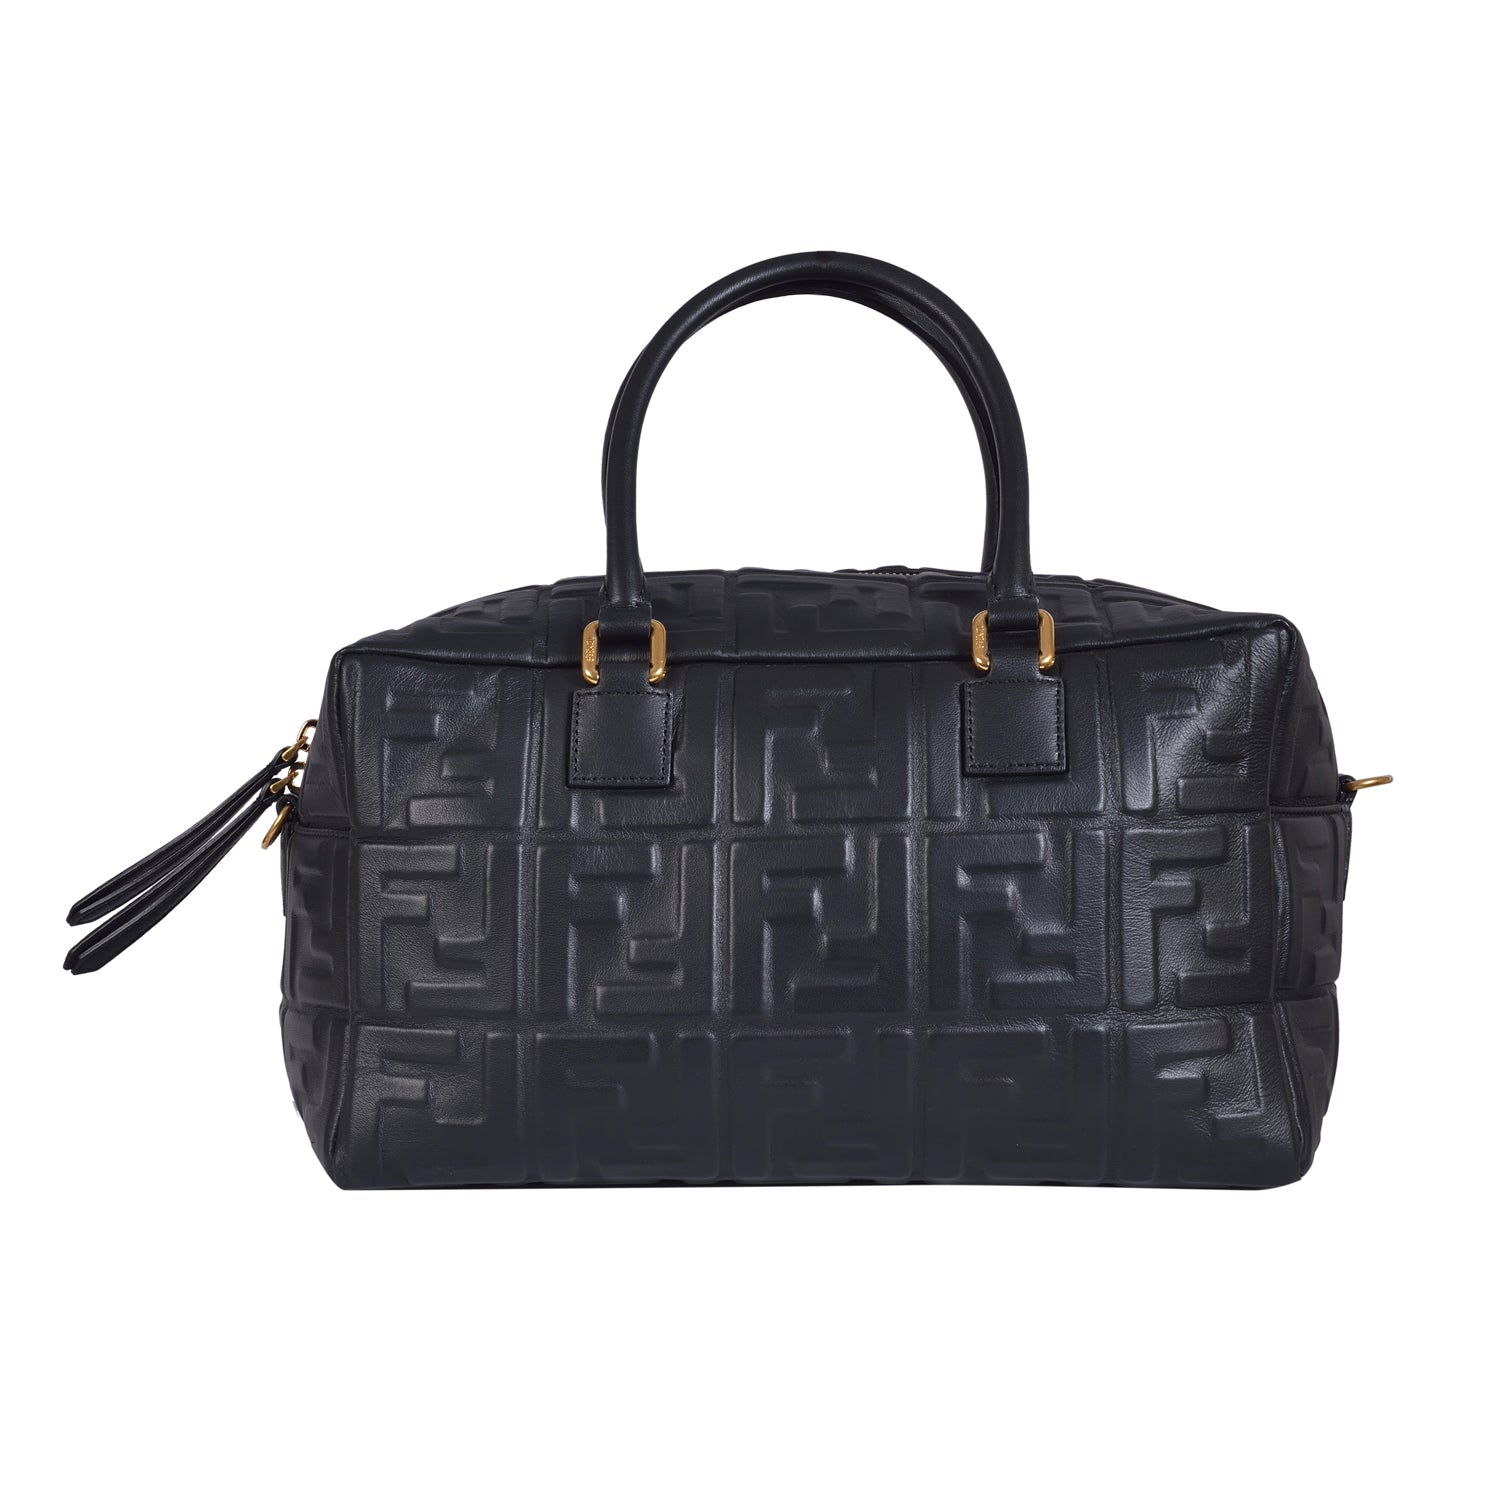 Fendi Black Lambskin Leather Boston Bag